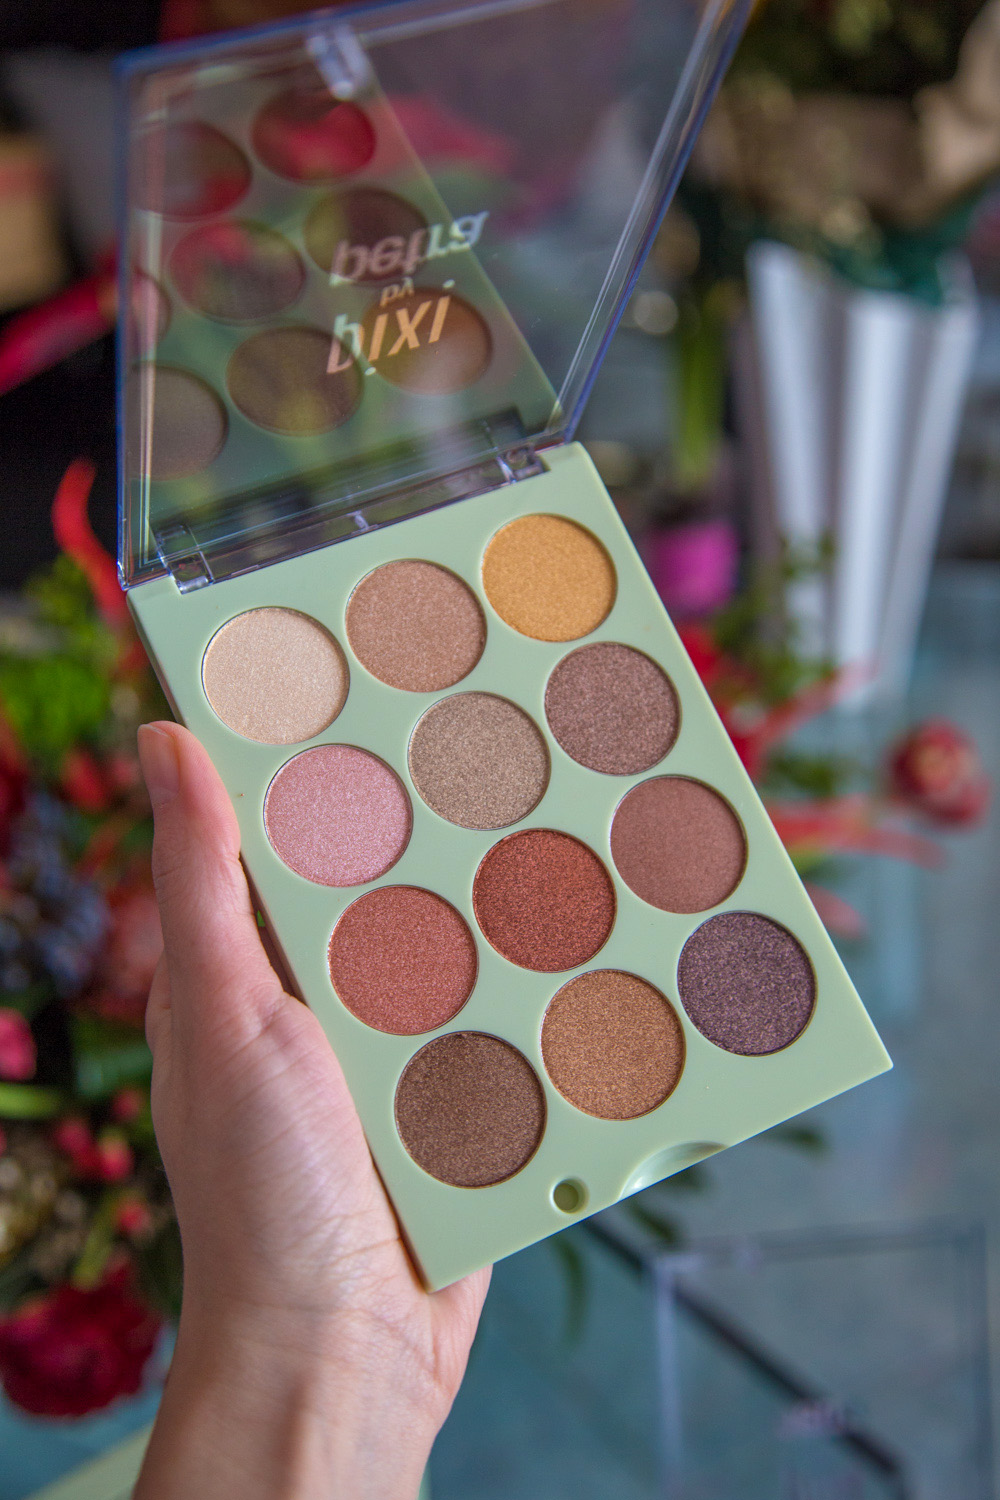 pixi beauty reflex light palette